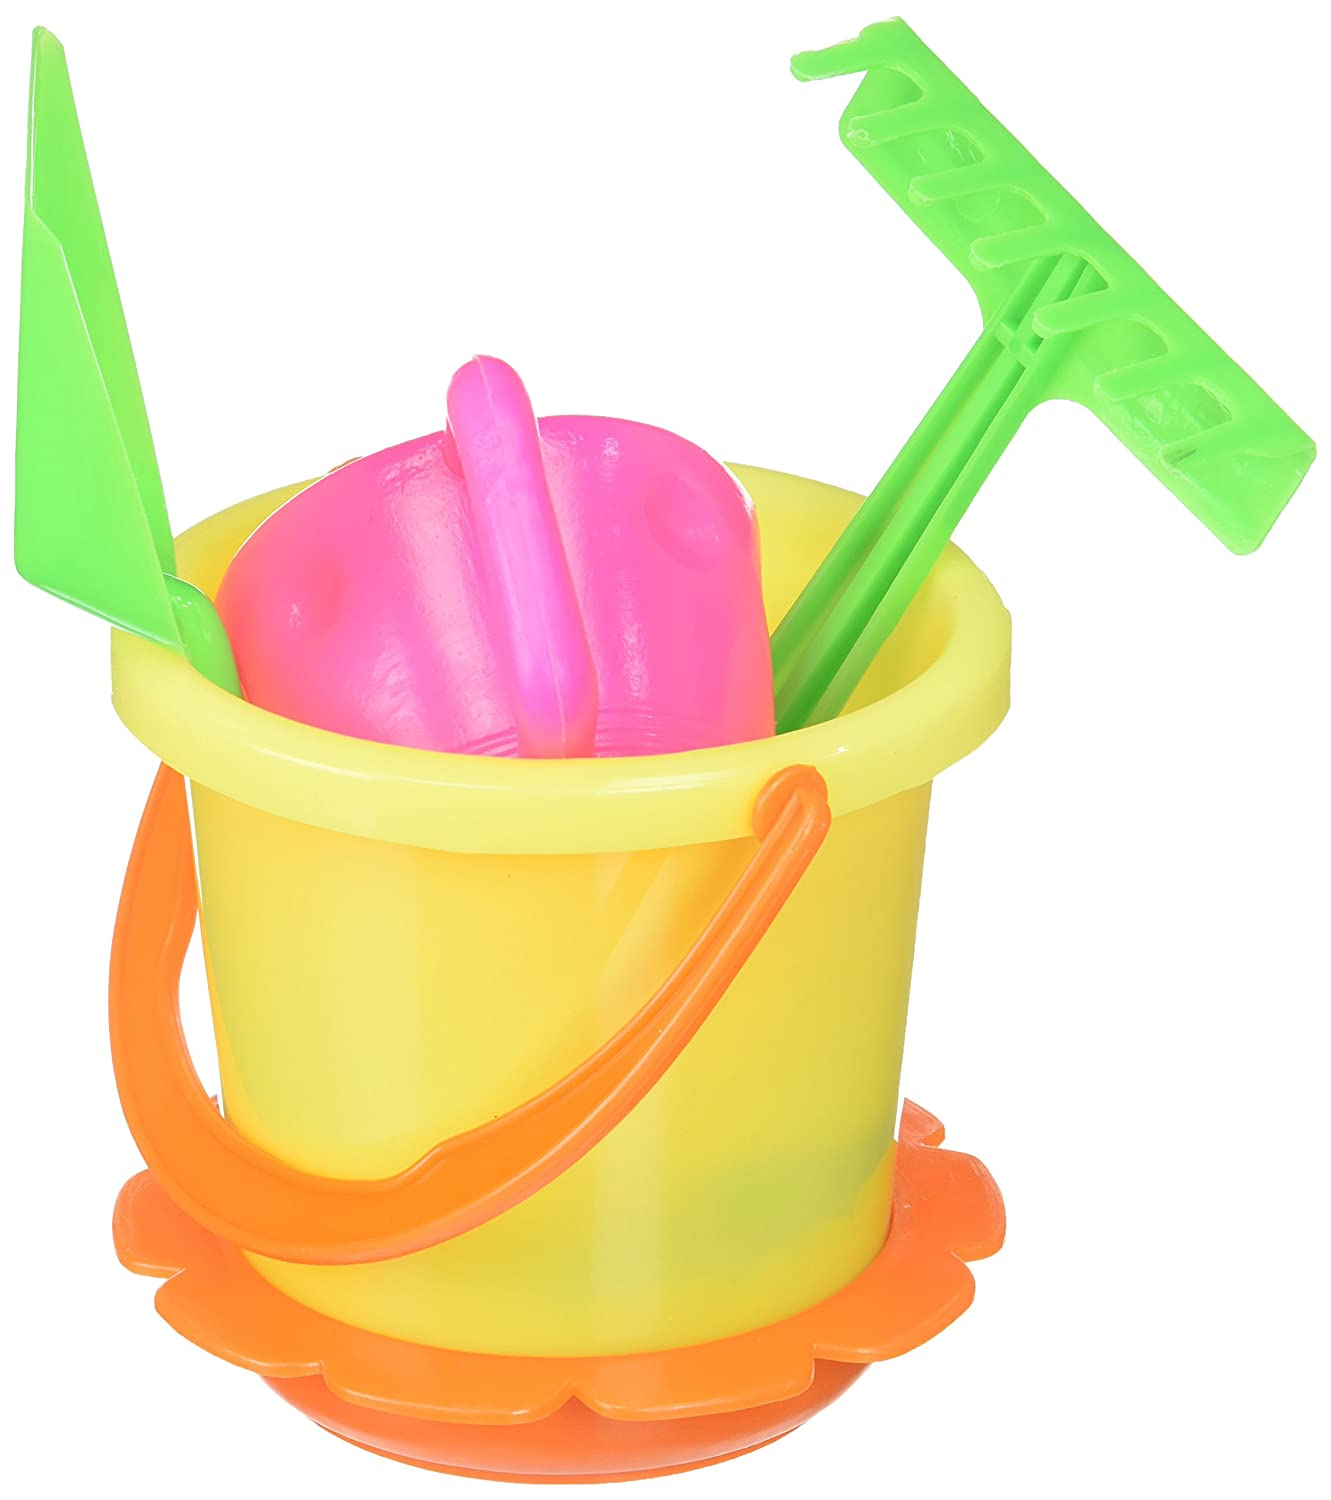 McToy Educational Products - 6 Piece Sandbox Beach Set - Bucket, Shovel & more. [Toy] - Sandbox Beach set includes 6 pieces BTBESET